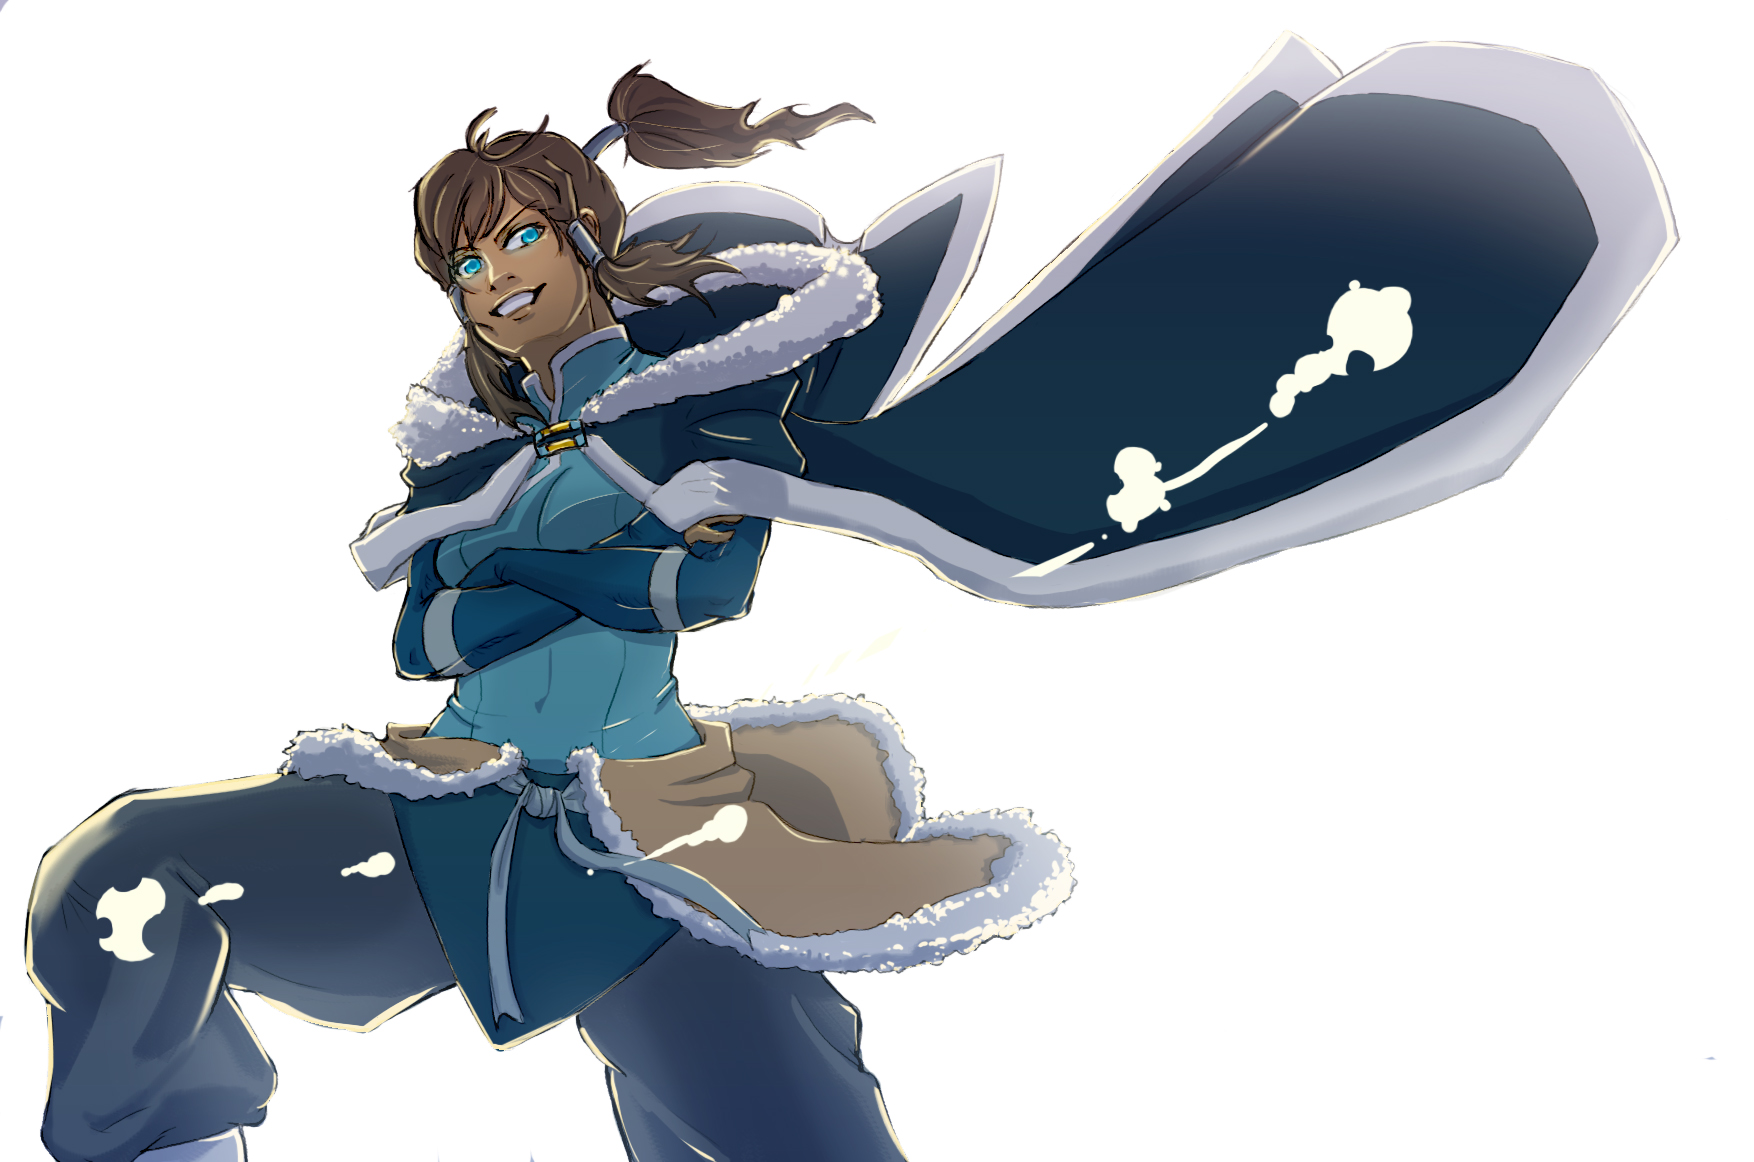 Korra by elicitchaos